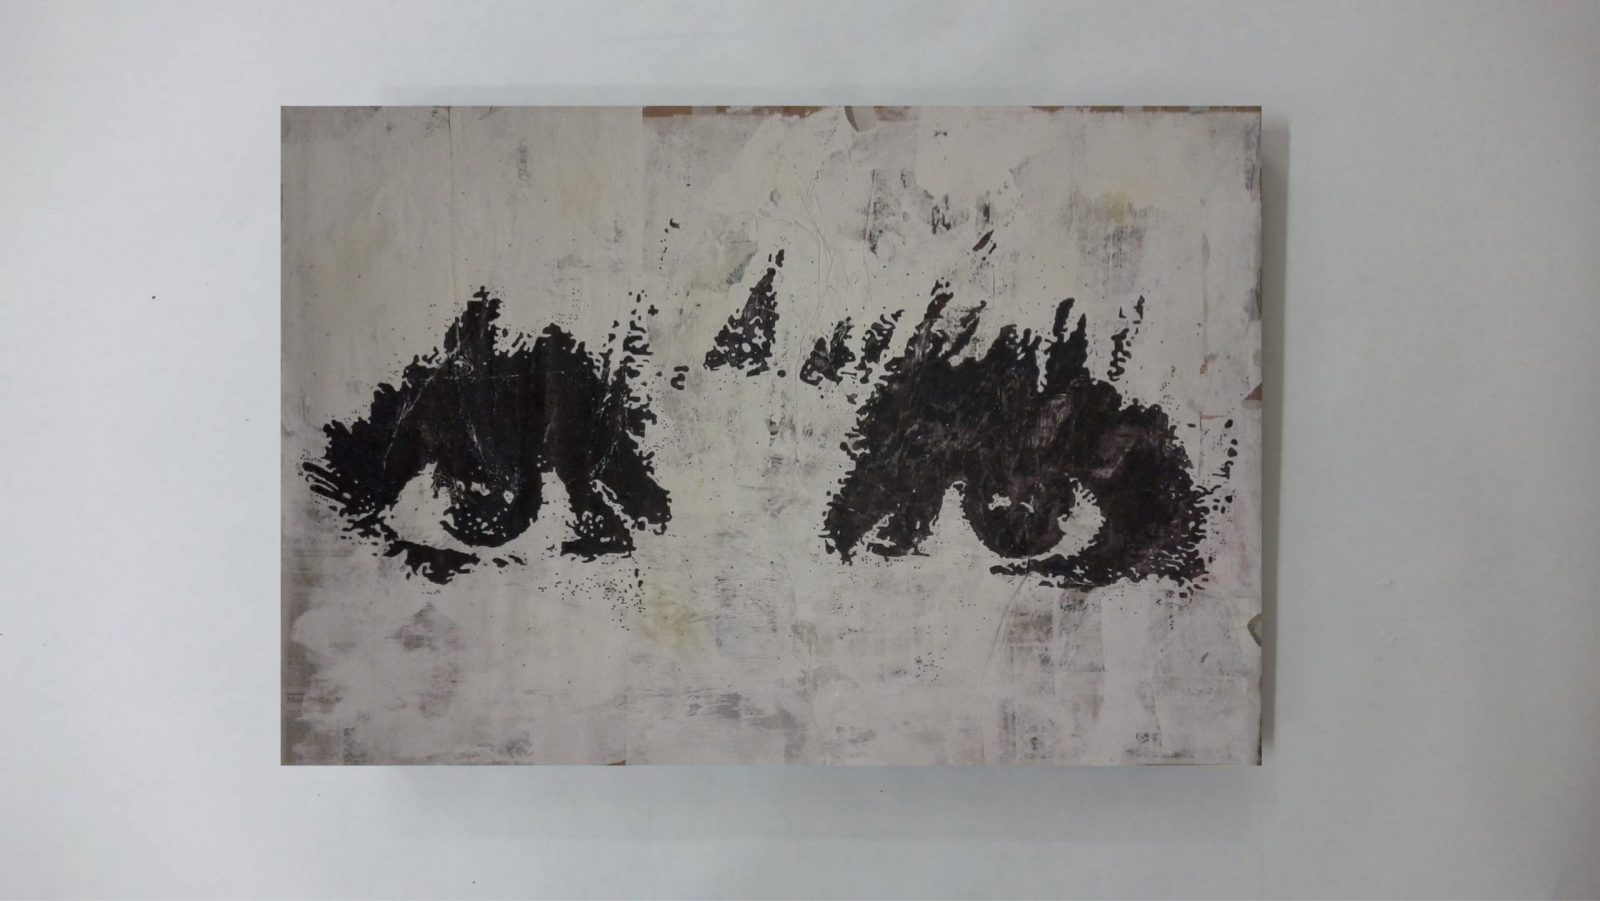 Portrait, Portraiture, Realism, Contemporary Art | Dimensions: 150 x 100 cm. | Technique: Mixed Media | Over Painted Paper [Verso]. | Supporting Material: Paper. | Materials: Acrylic Paint | Chinese Ink | Spray Paint | Marker | Tape | Paper. | Recto: As seen in the photo. | Verso: Black.